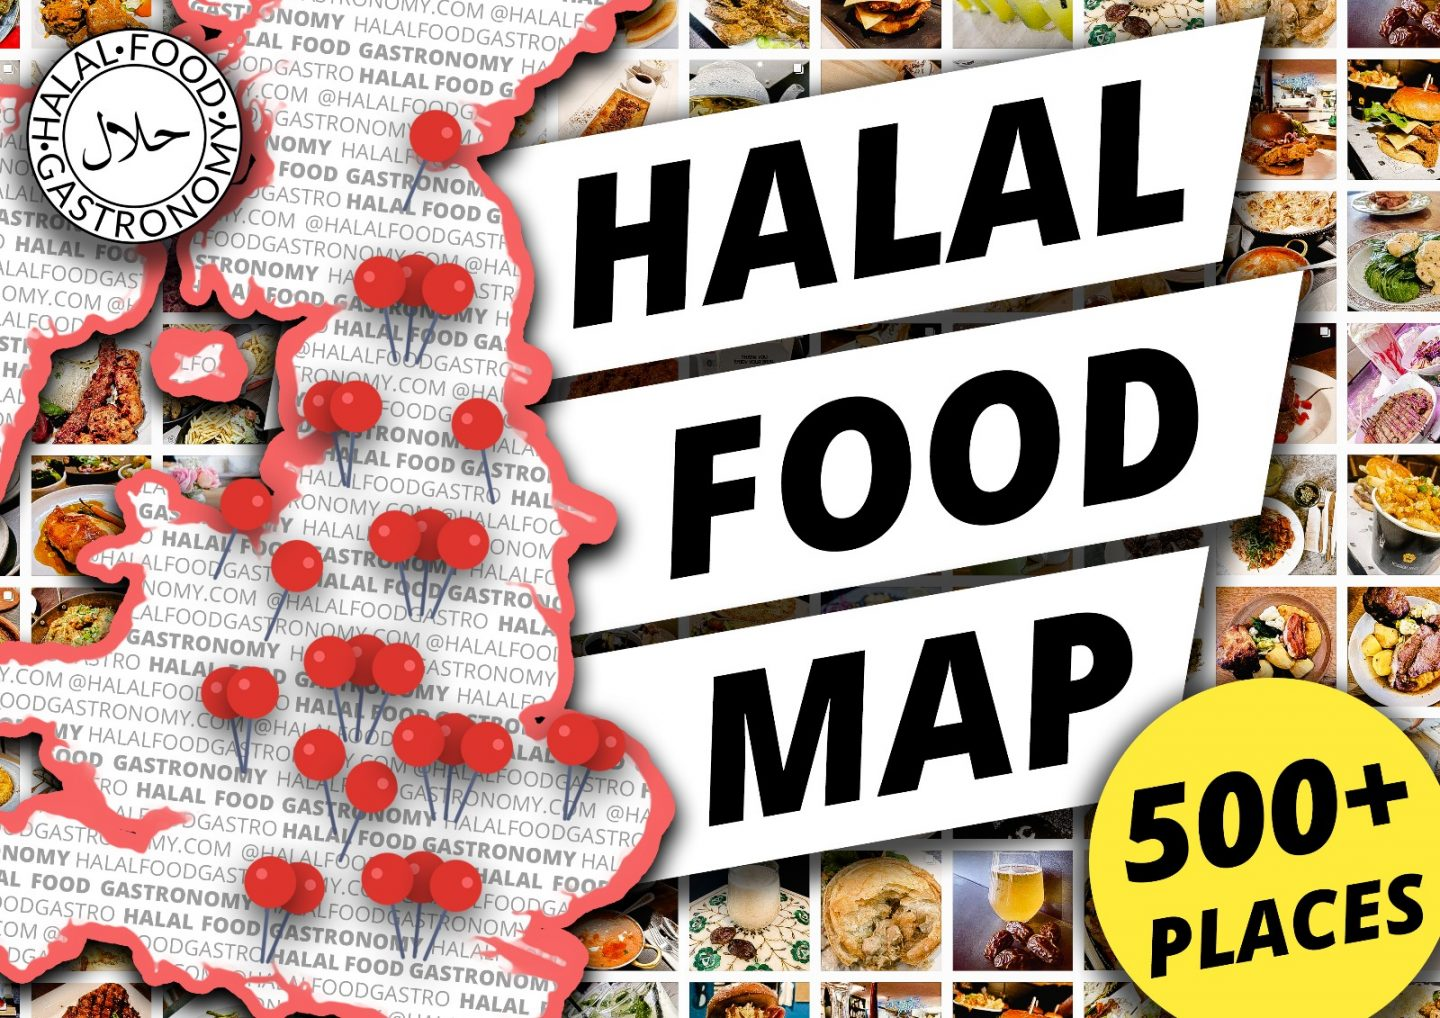 The Best Fully Halal Place To Eat In Bradford Halal Food Gastronomy